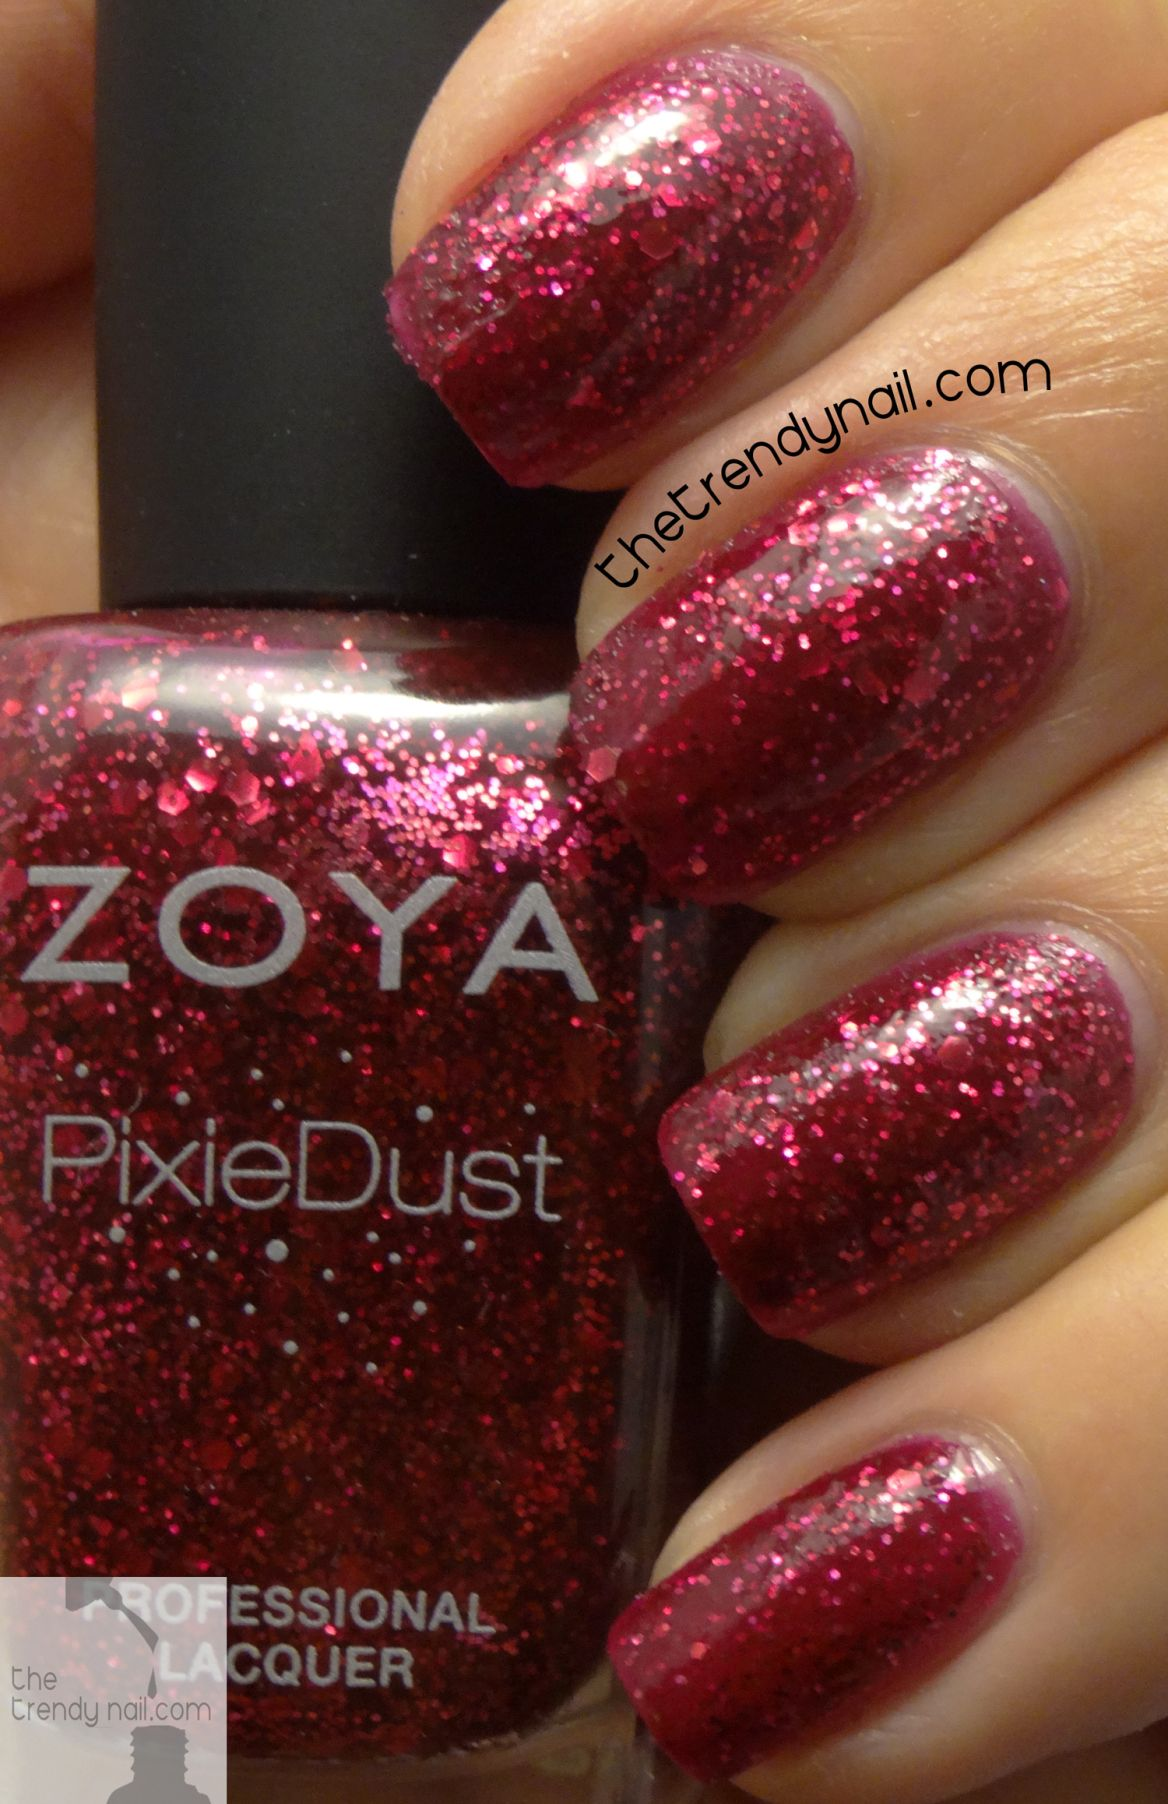 Zoya Fall 2014 Ultra PixieDust Collection Swatches